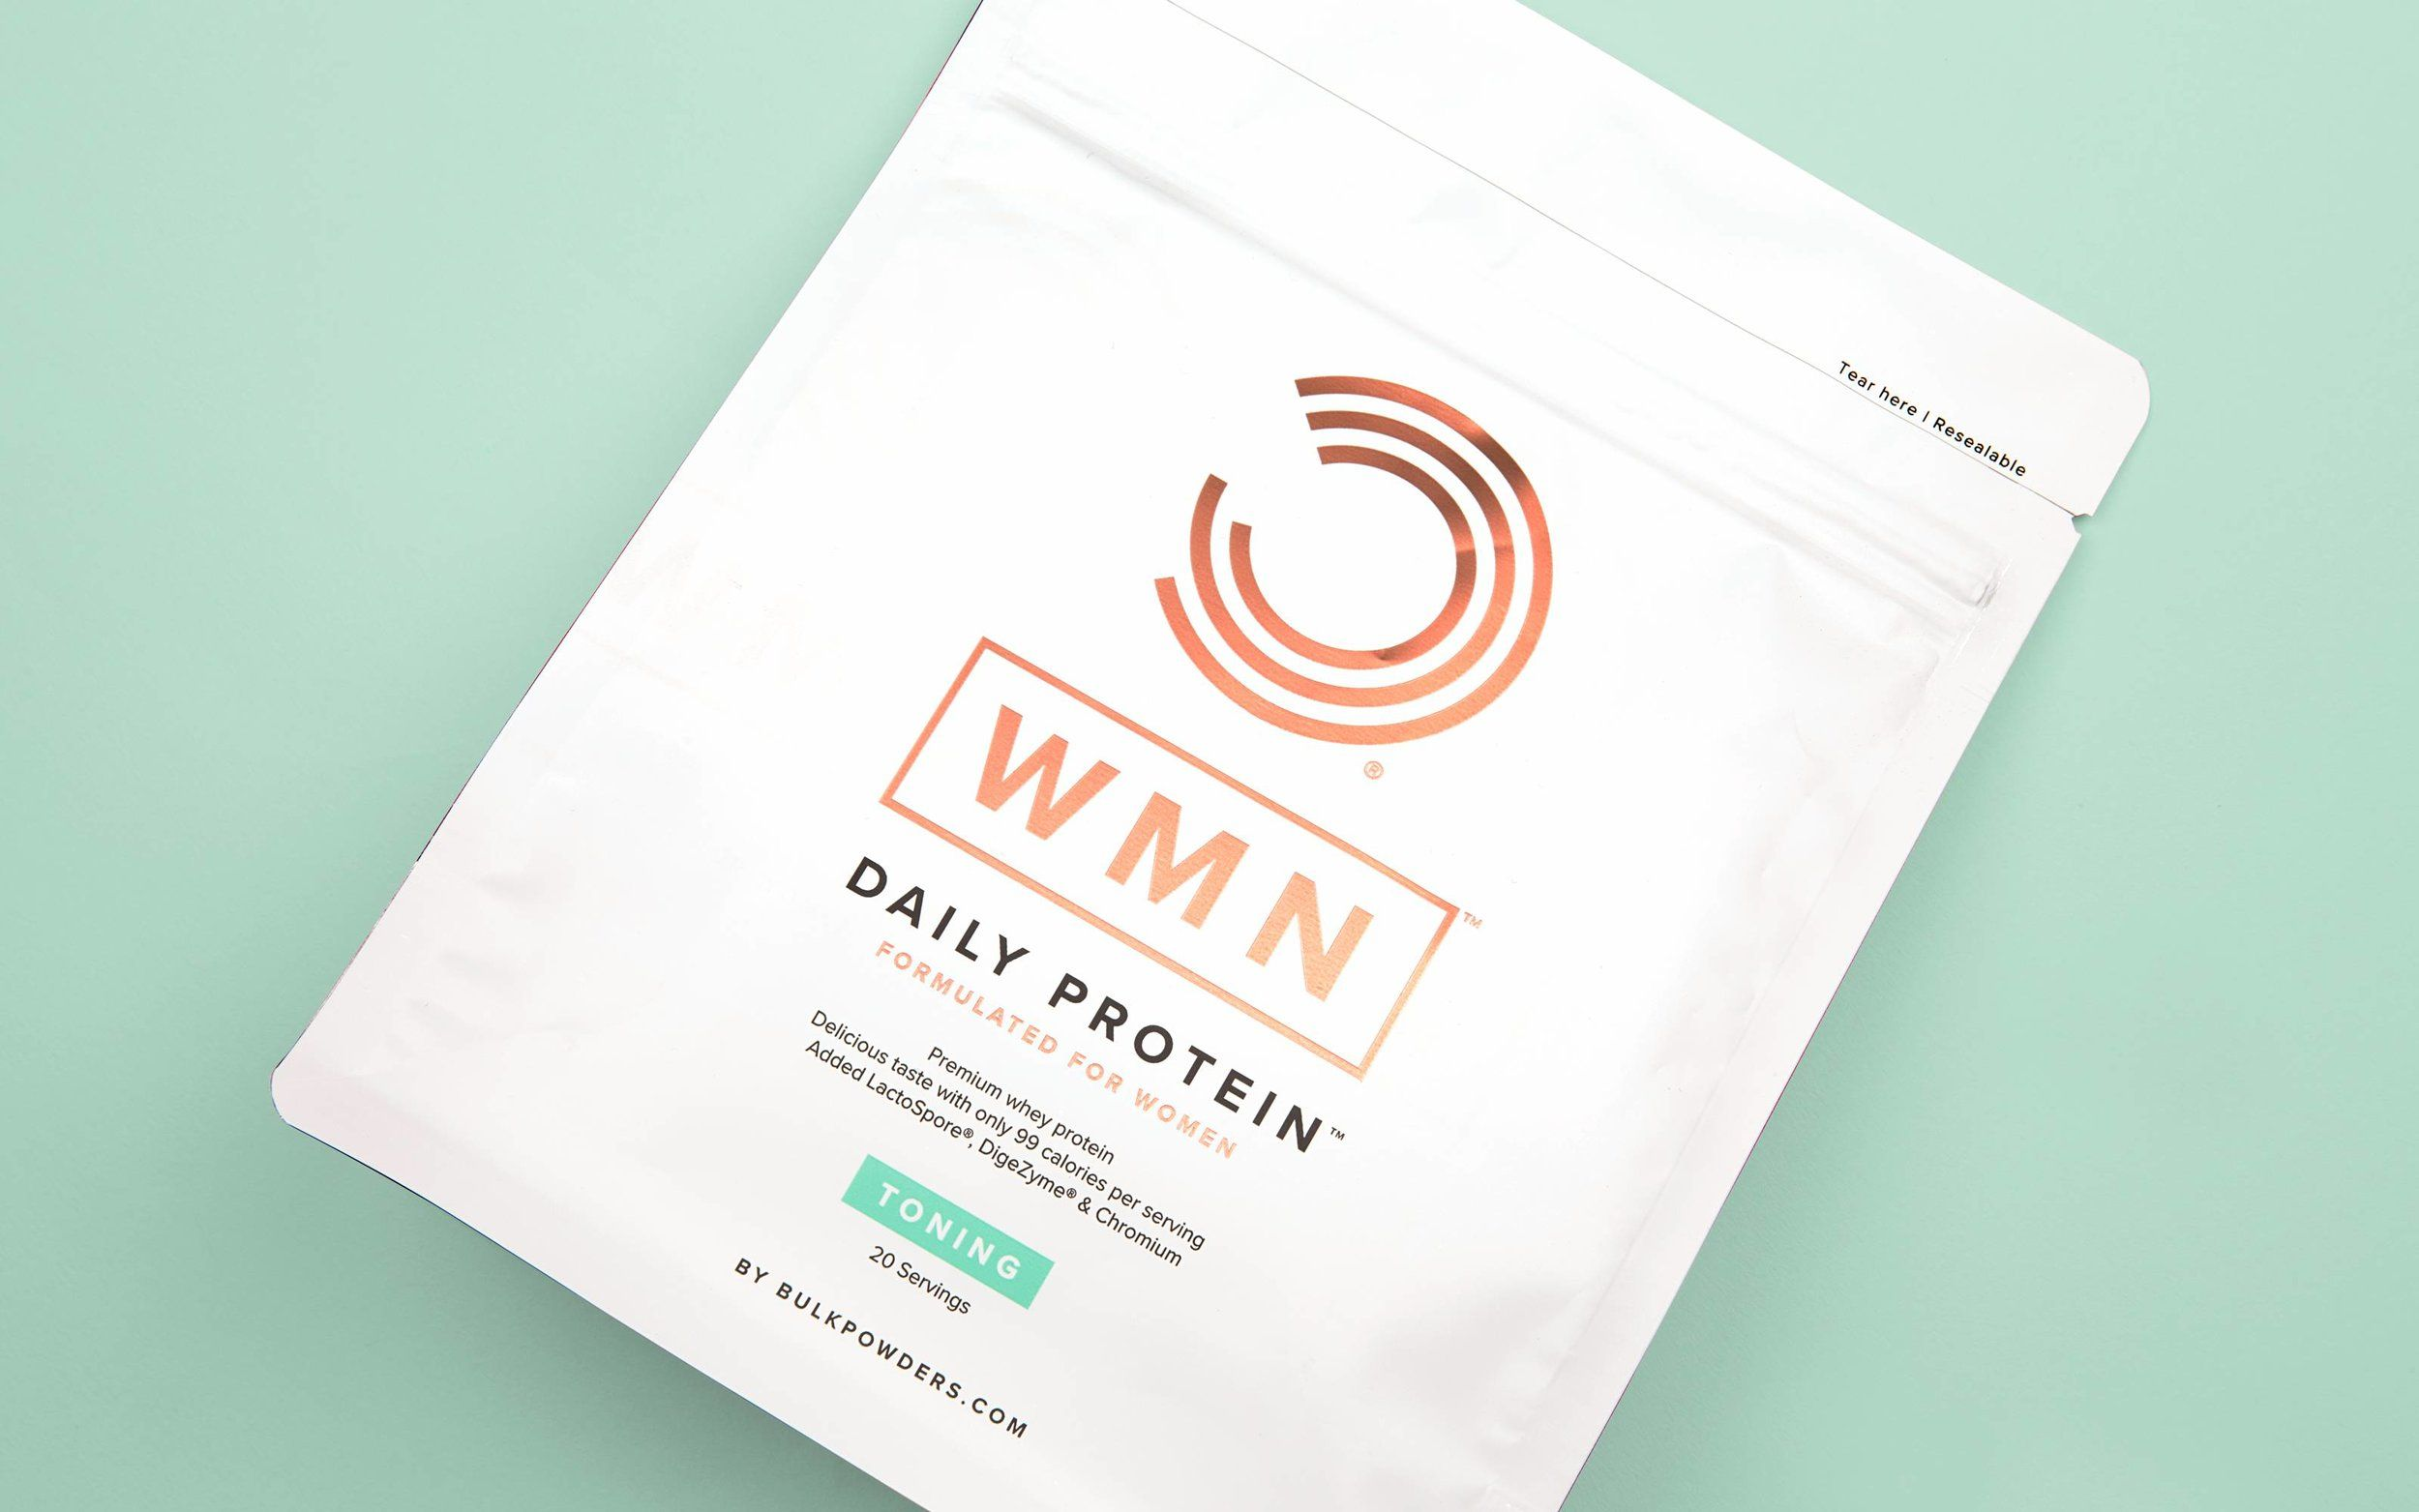 Wmn Protein Aims To Help Women Reach Their Fitness Goals